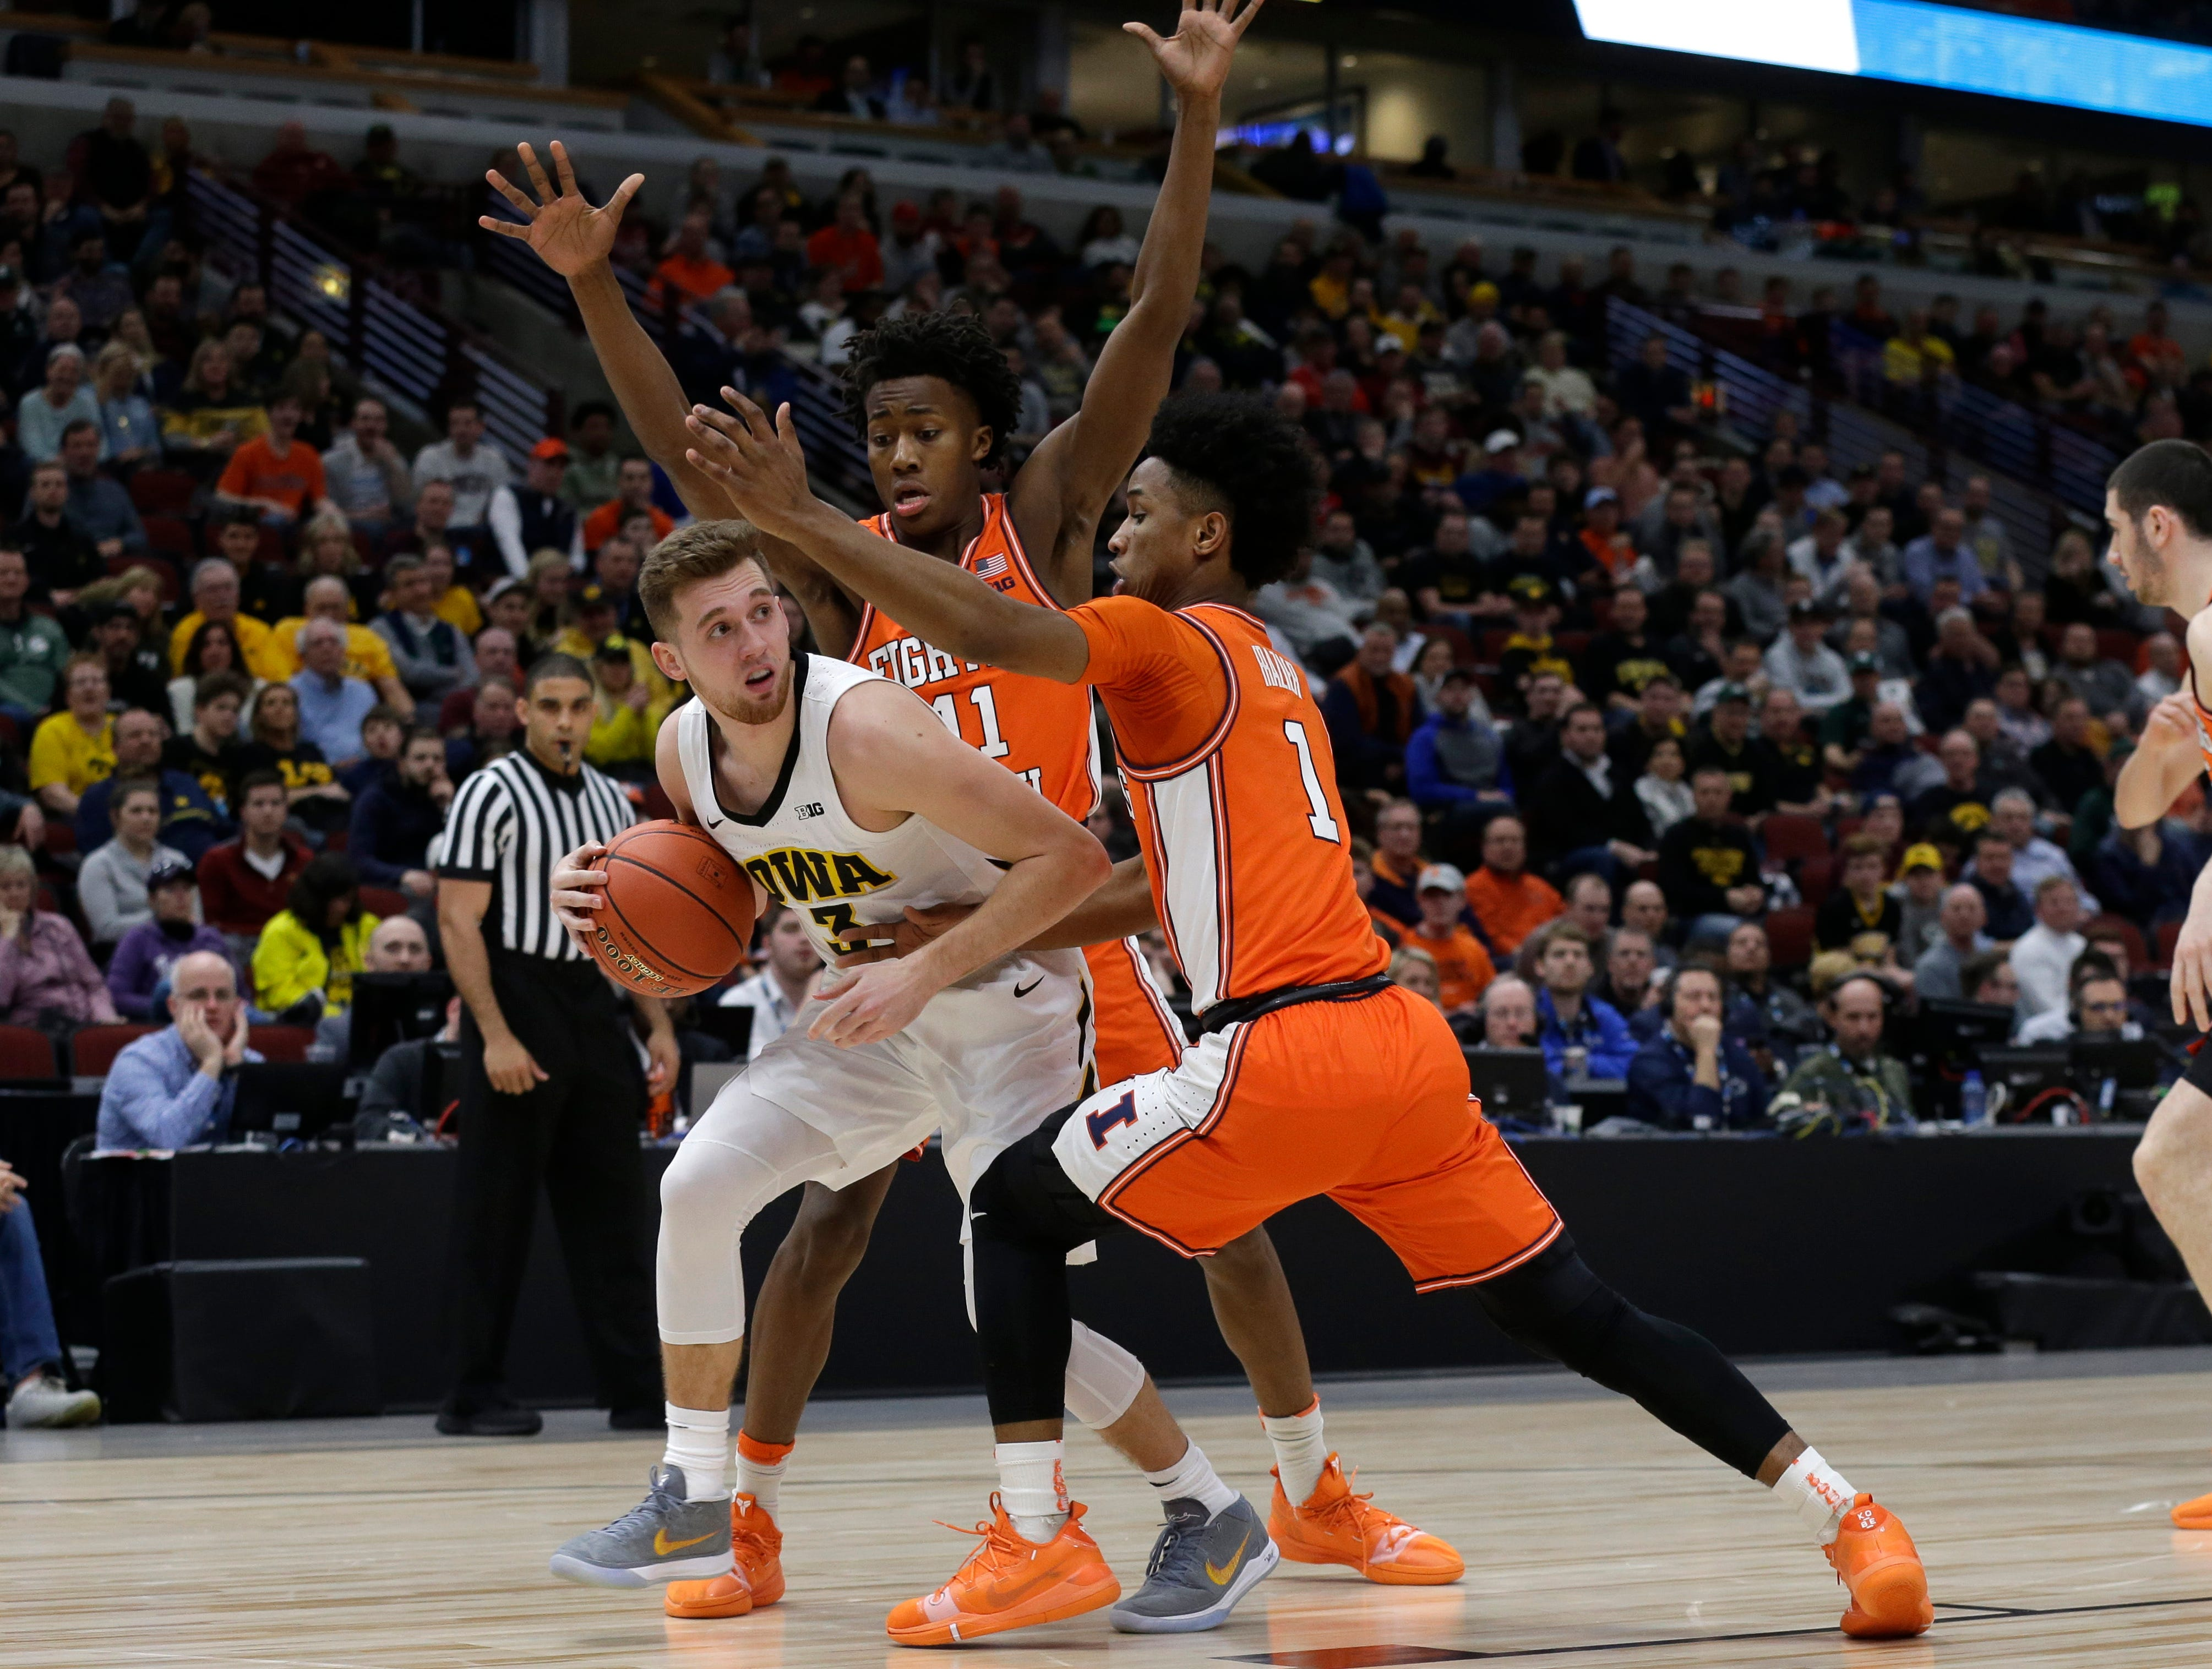 Iowa's Jordan Bohannon (3) looks to pass against Illinois's Ayo Dosunmu (11) and Trent Frazier (1) during the first half of an NCAA college basketball game in the second round of the Big Ten Conference tournament, Thursday, March 14, 2019, in Chicago. (AP Photo/Kiichiro Sato)